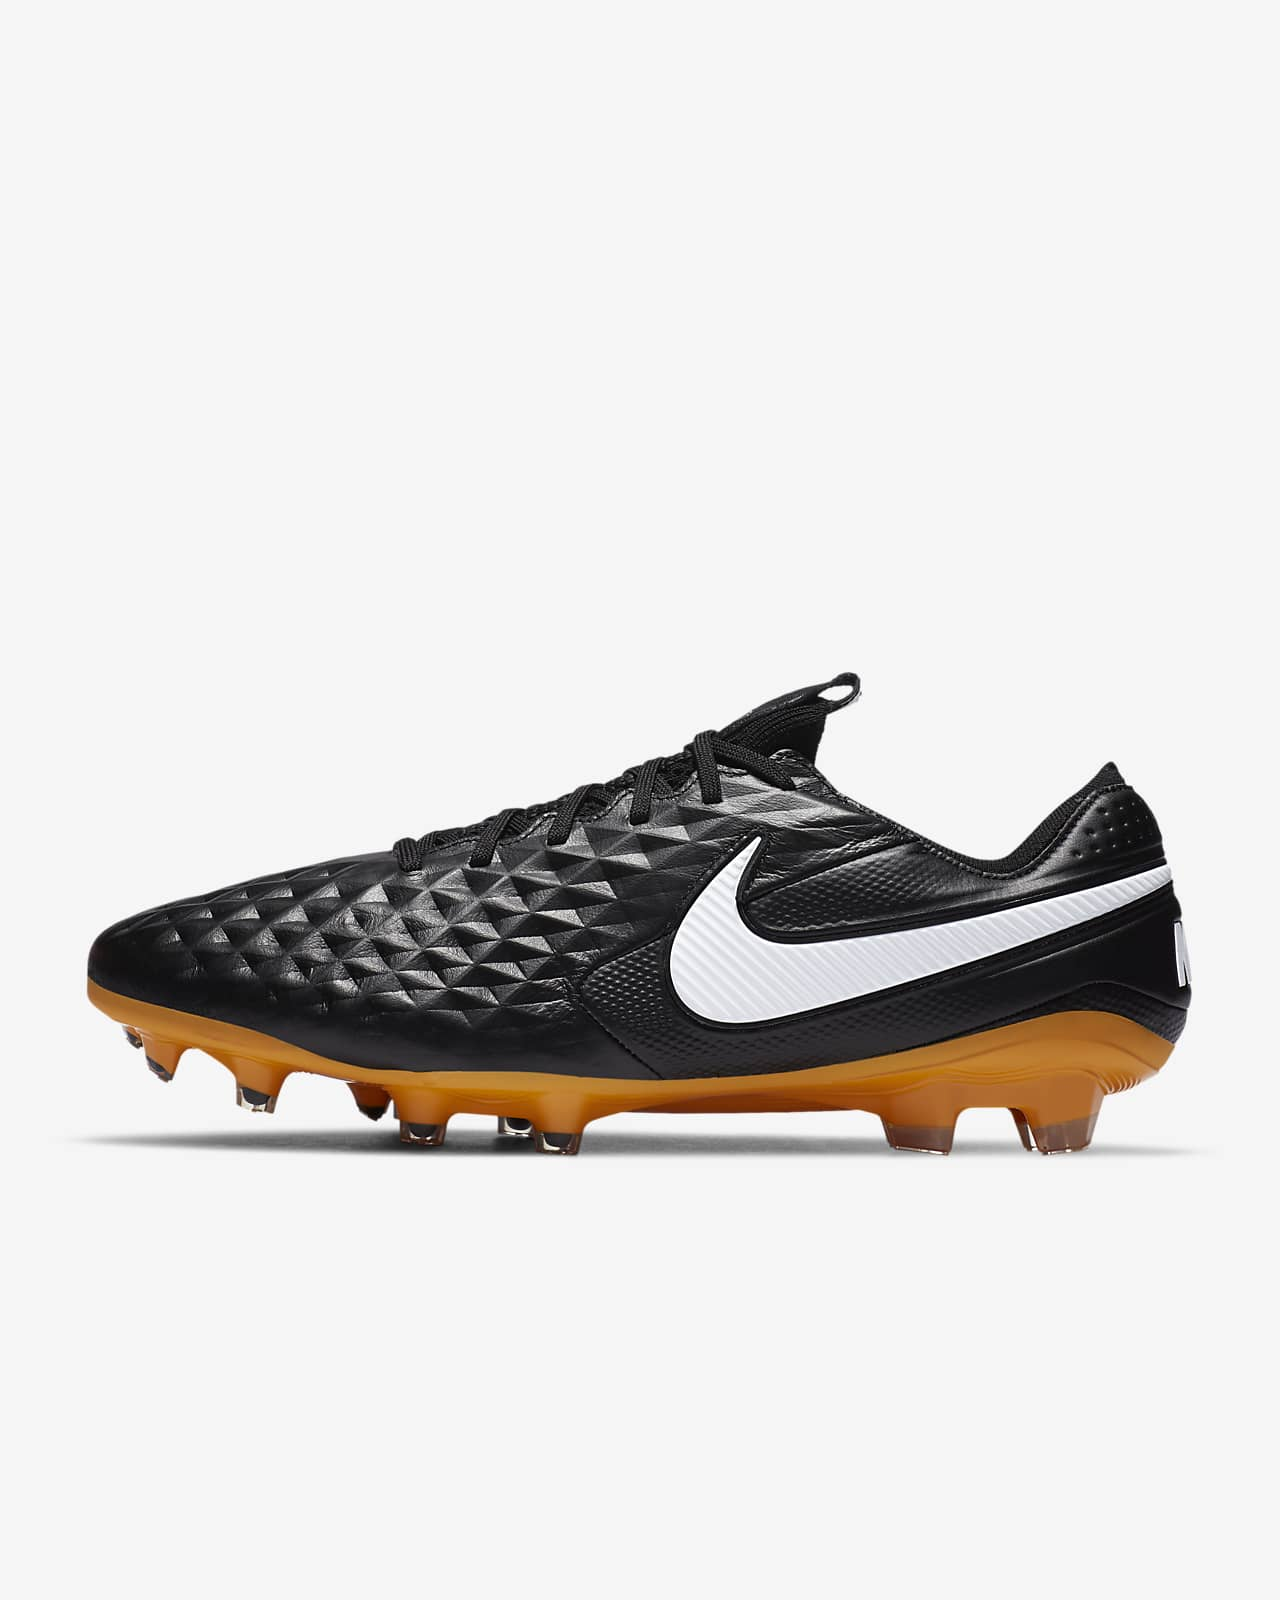 Nike Tiempo Legend 8 Elite Tech Craft FG Botes de futbol per a terreny ferm